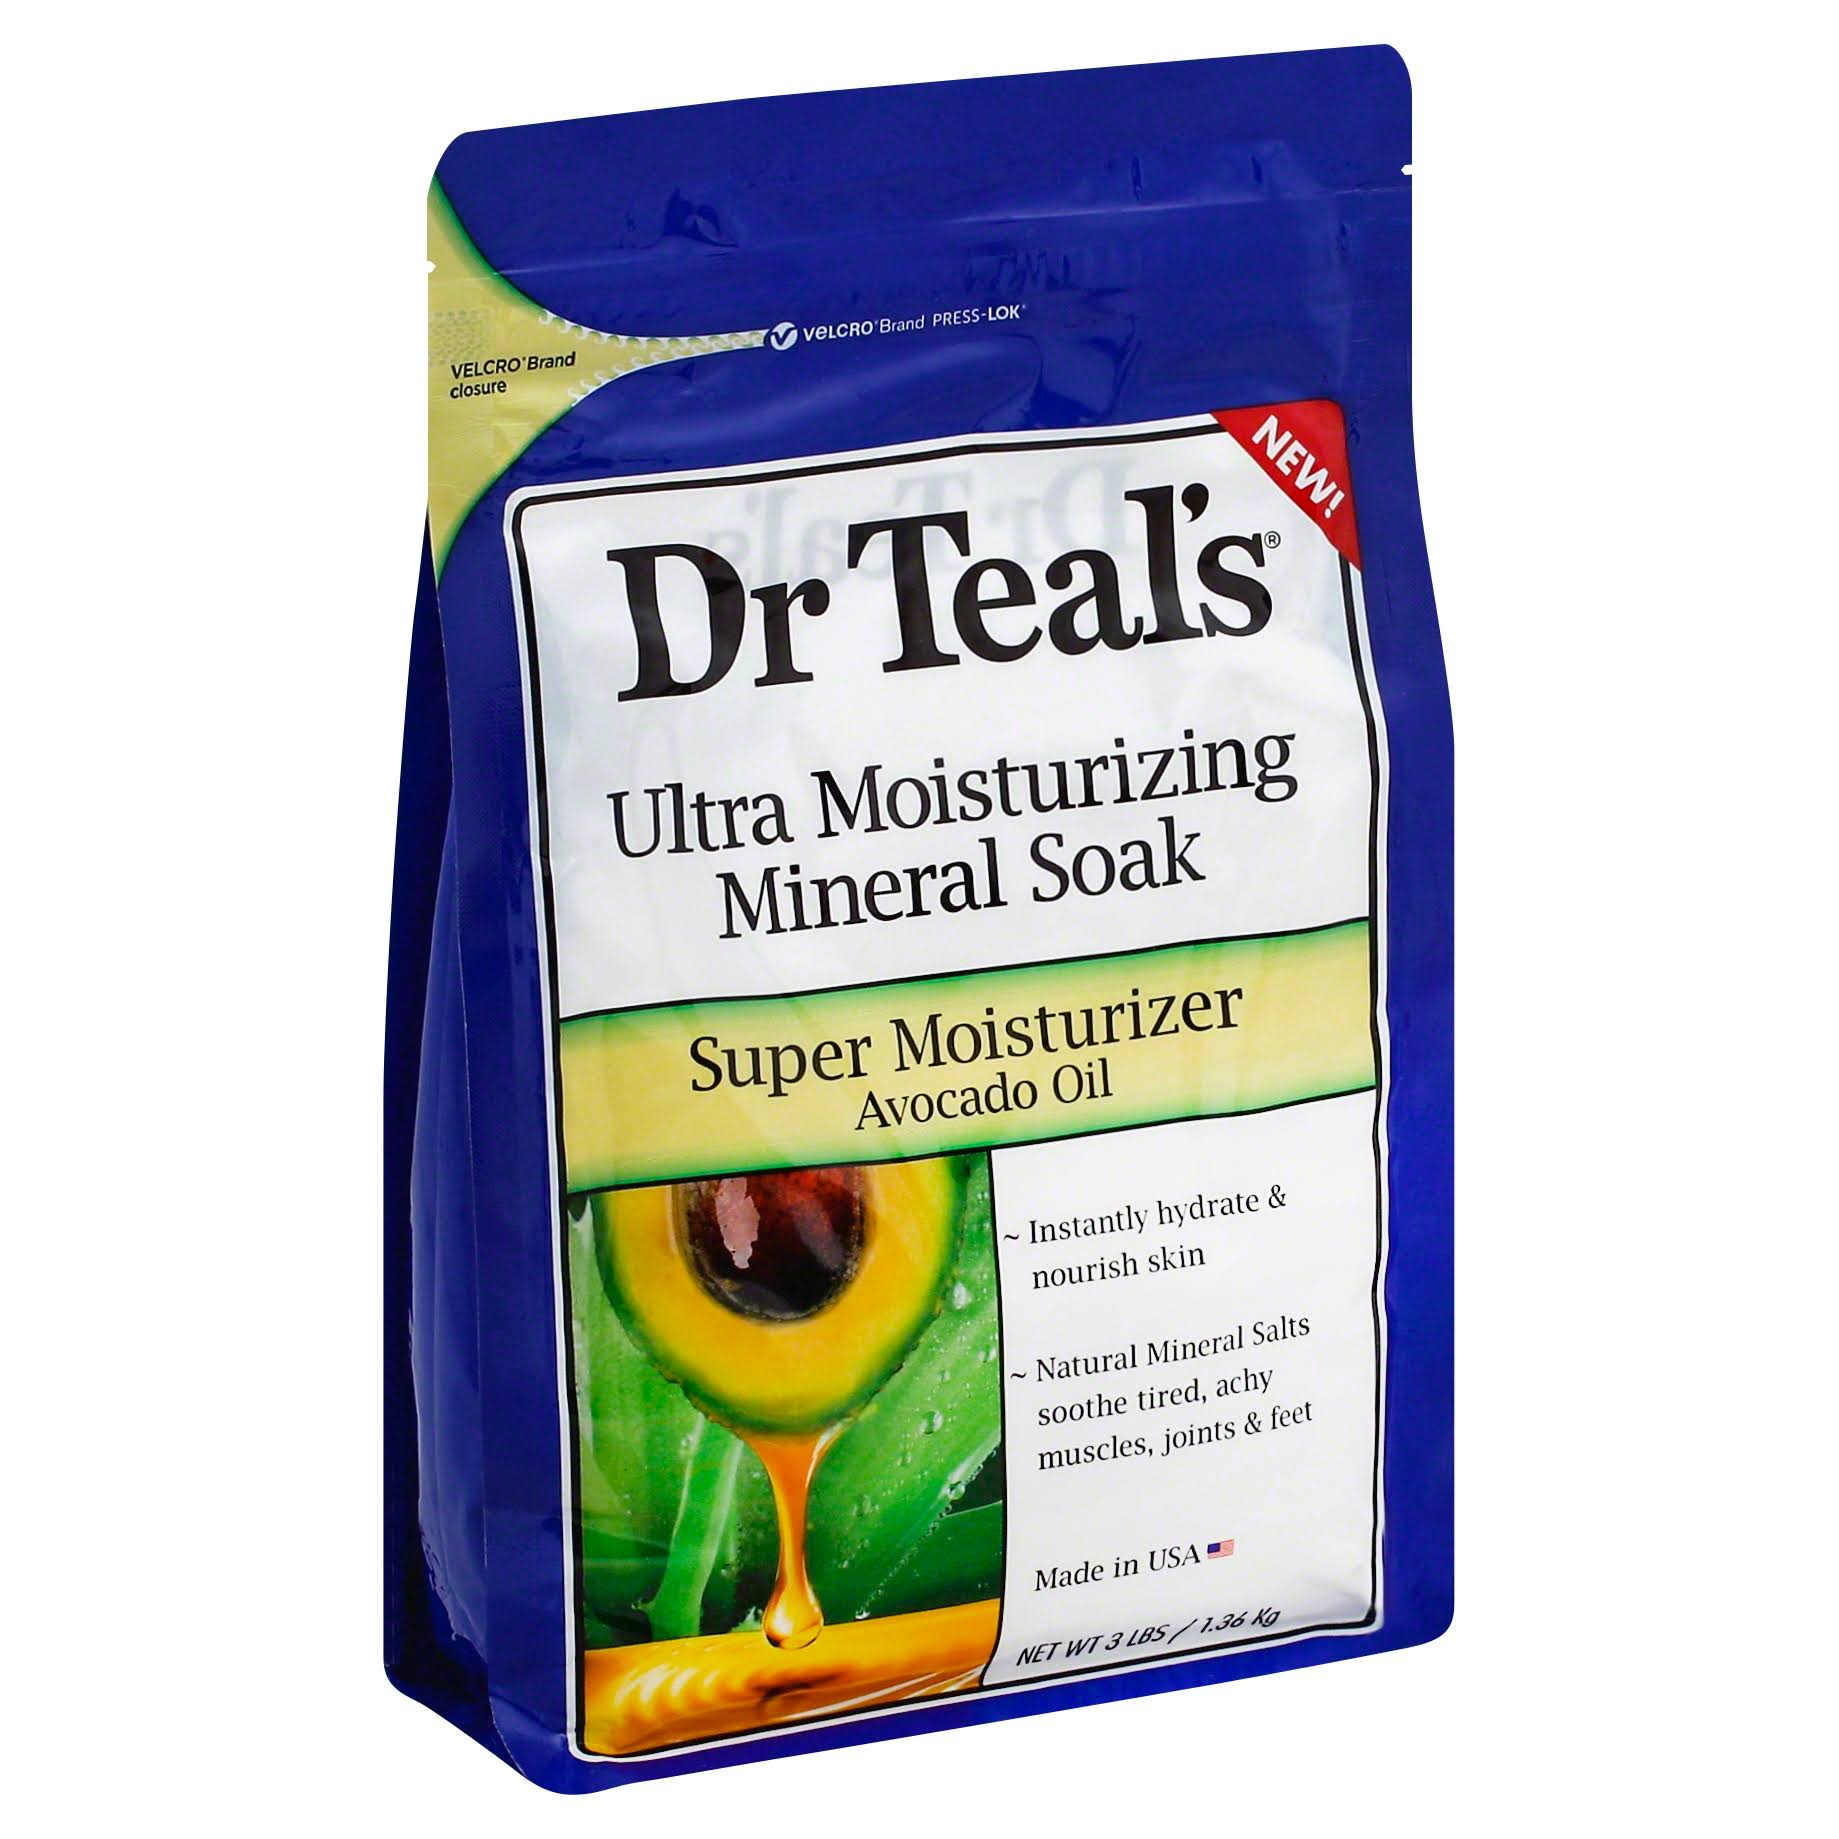 Dr Teal's Avocado Oil Ultra Moisturizing Mineral Soak